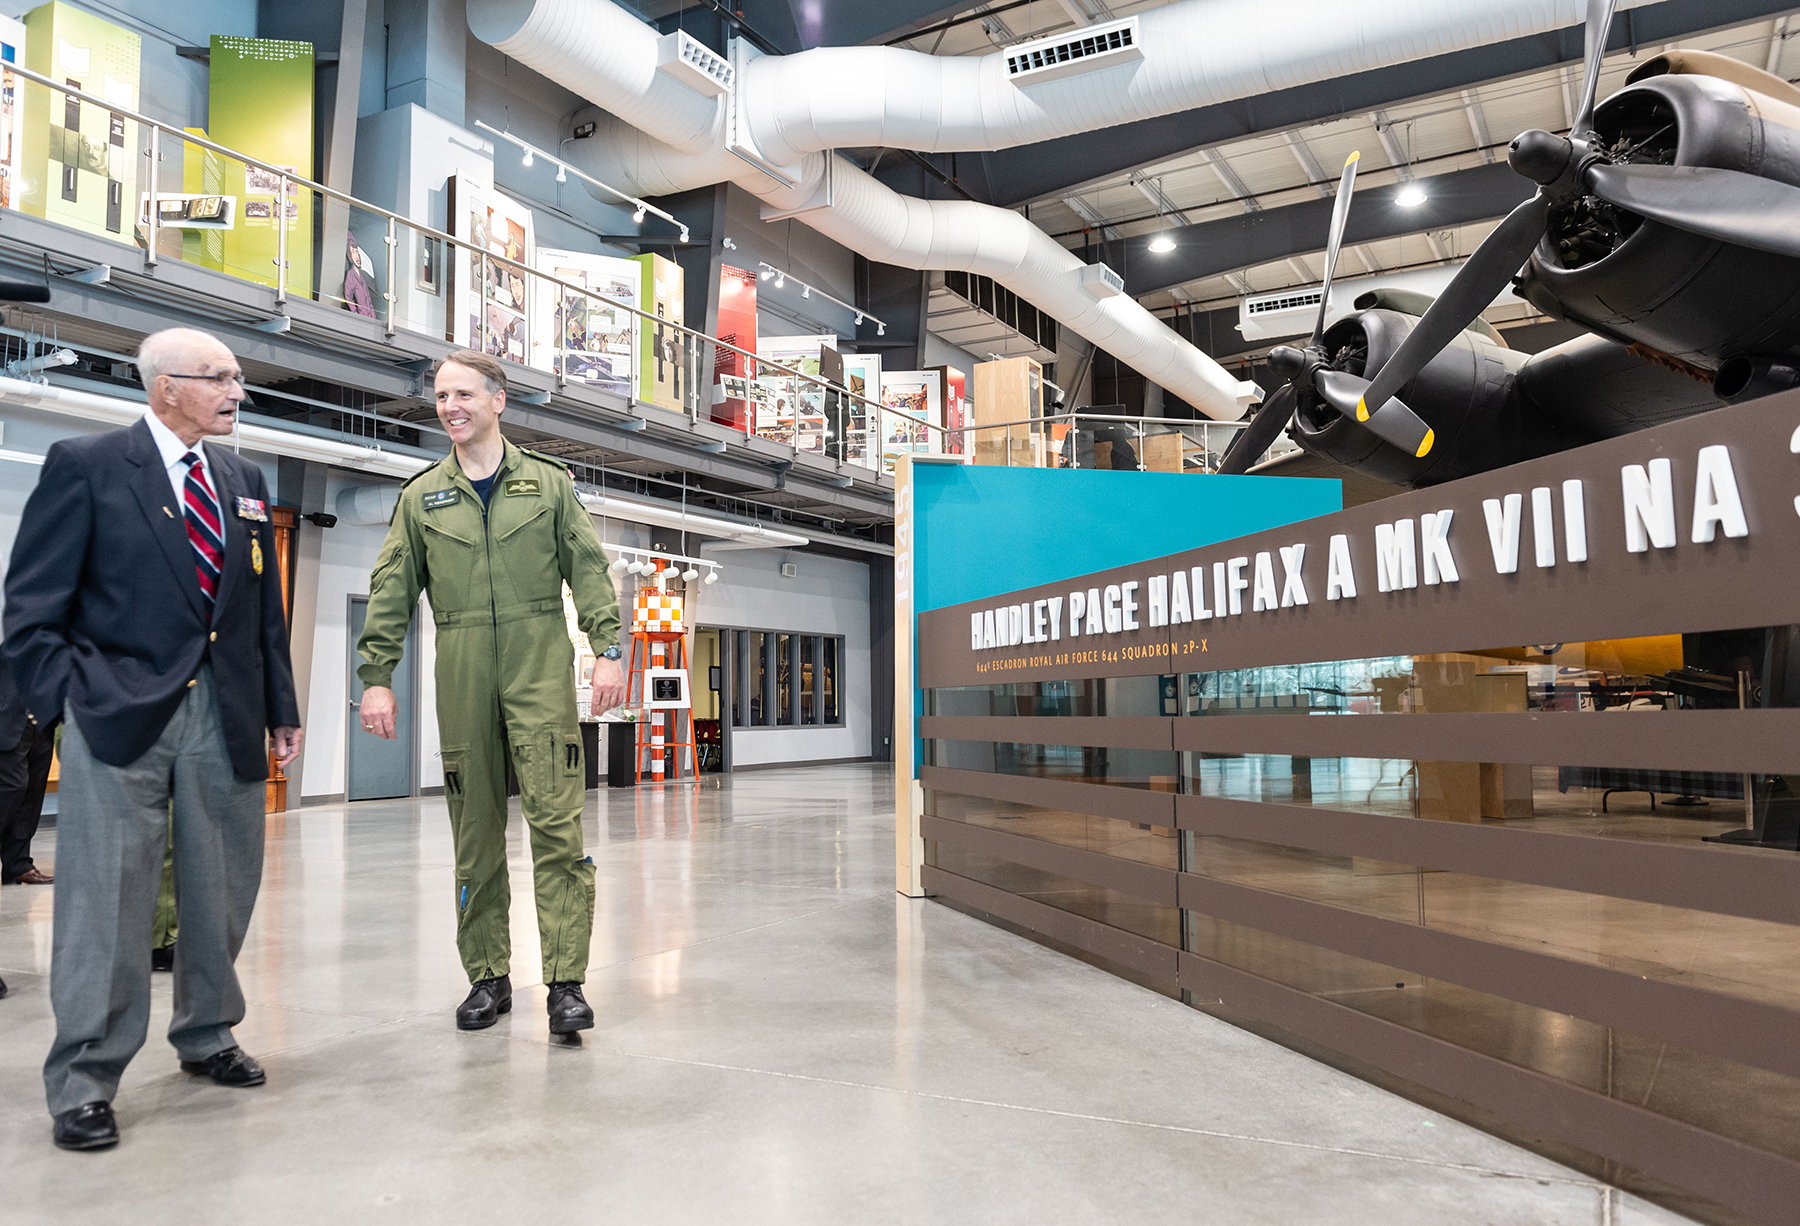 On May 15, 2019, Flight Lieutenant (retired) Stuart Vallières views the signage for the Handley Page Halifax heavy bomber at the National Air Force Museum of Canada in Trenton, Ontario, as commander of the Royal Canadian Air Force Lieutenant-General Al Meinzinger looks on. PHOTO: Makala Chapman